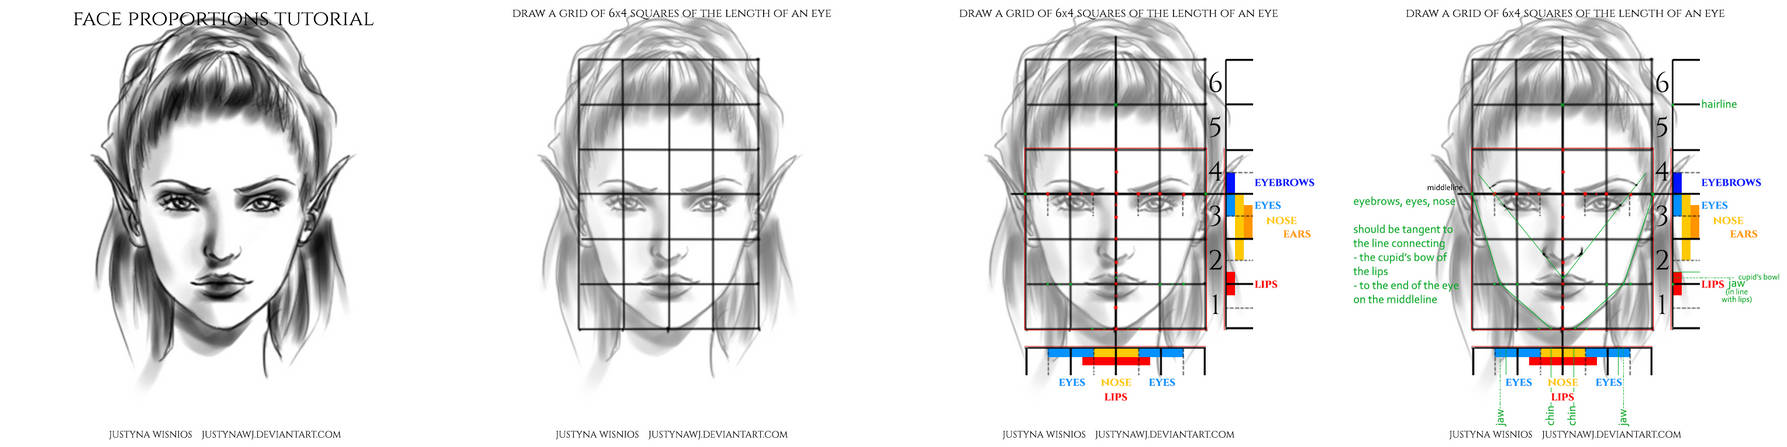 FACE PROPORTIONS TUTORIAL FEMALE